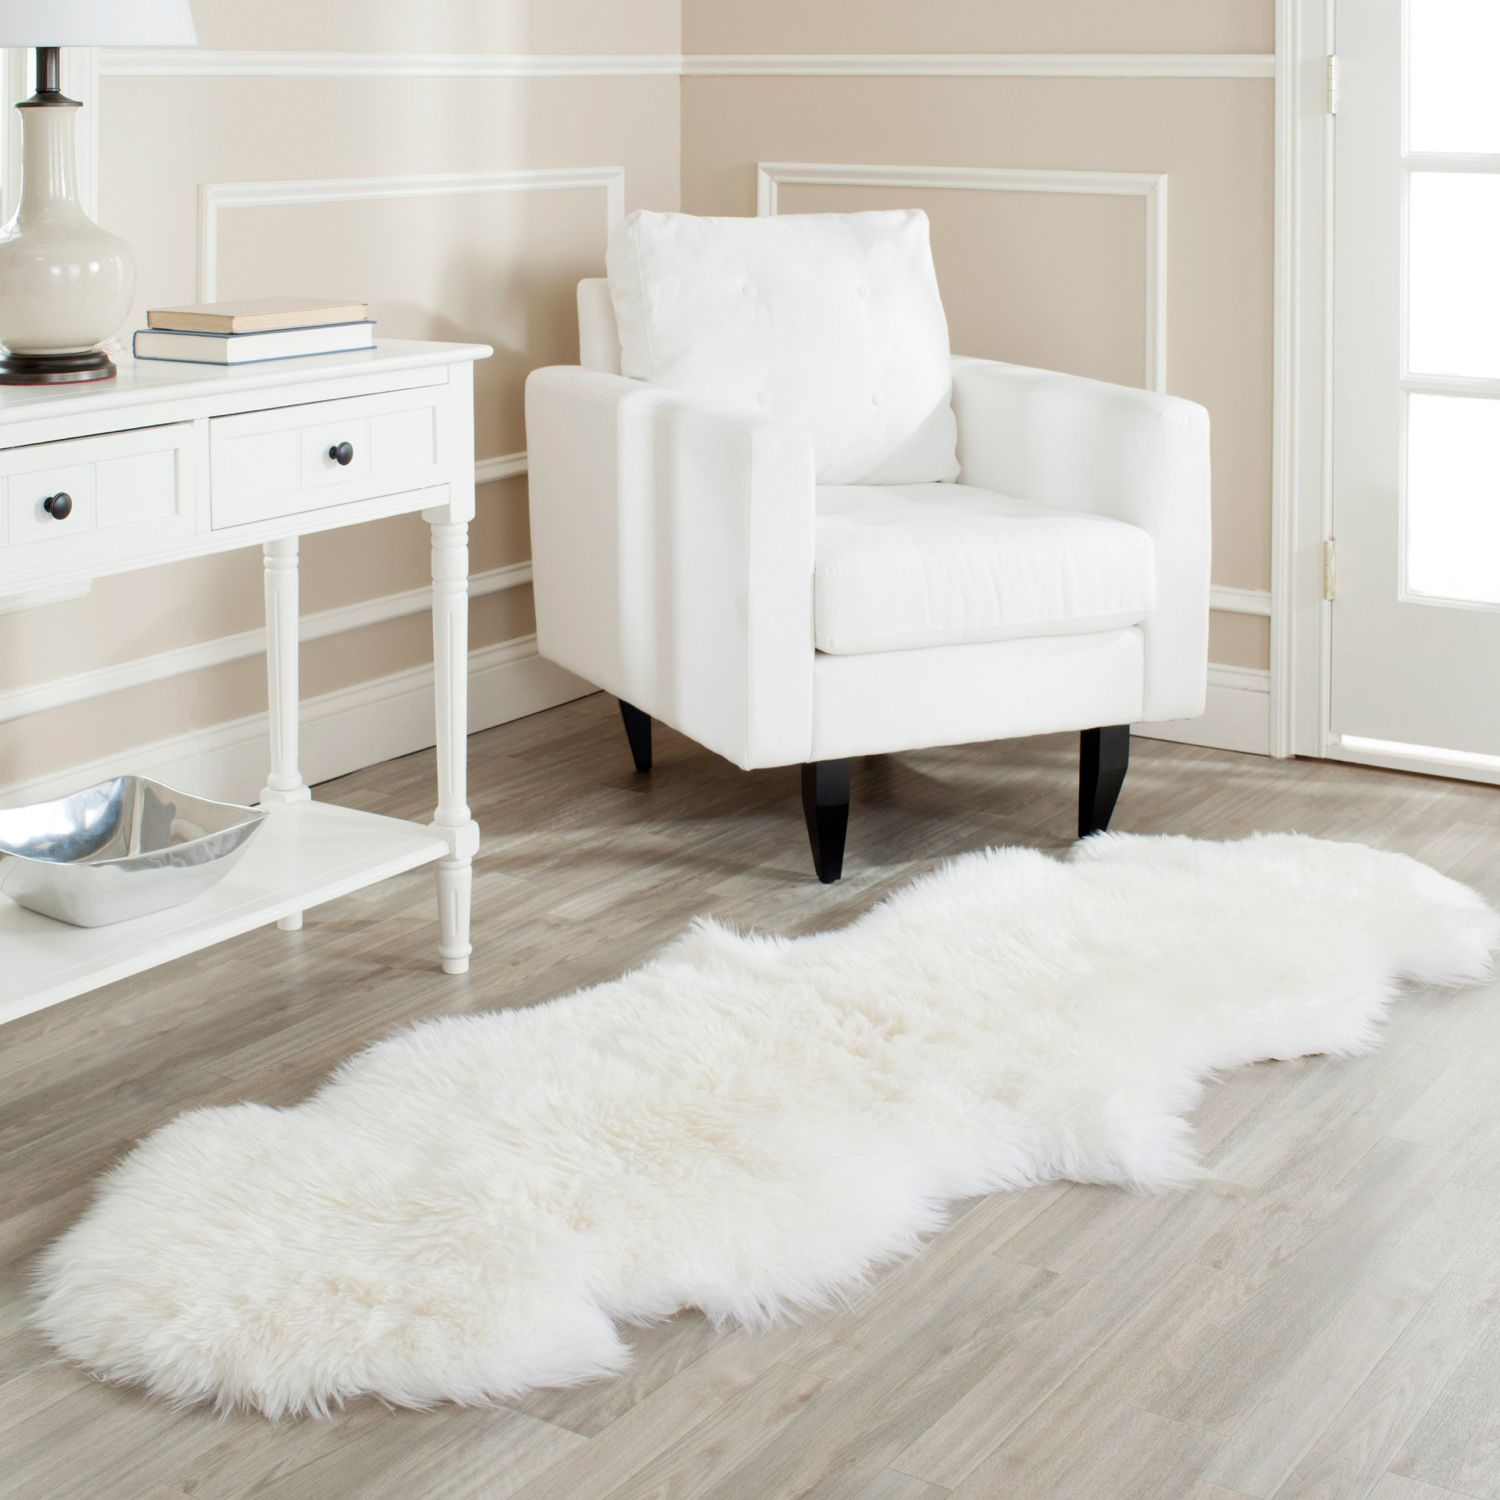 white wool shag rug. Contemporary Rug Give Your Flooring A Look Of Sophistication With This White Wool Shag Rug  Crafted From Genuine Sheepskin Hide Plush Rug Will Provide You  Inside White Wool Shag Rug T